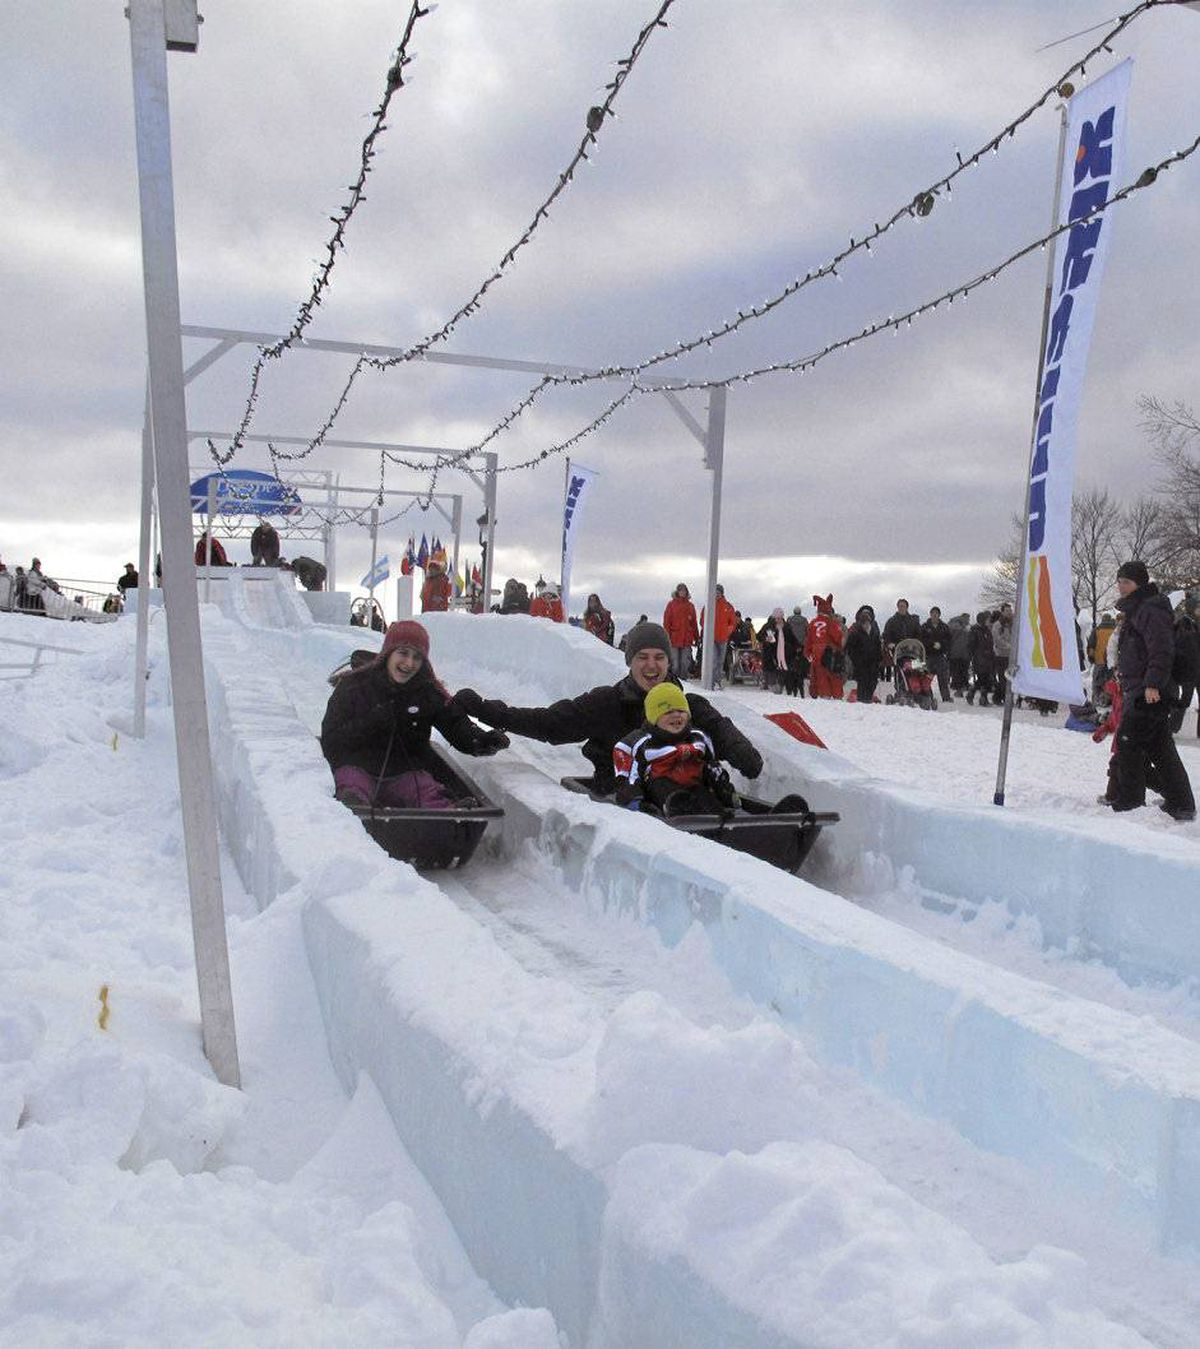 Take a ride down the spine-thumping ice slide at Carnaval.